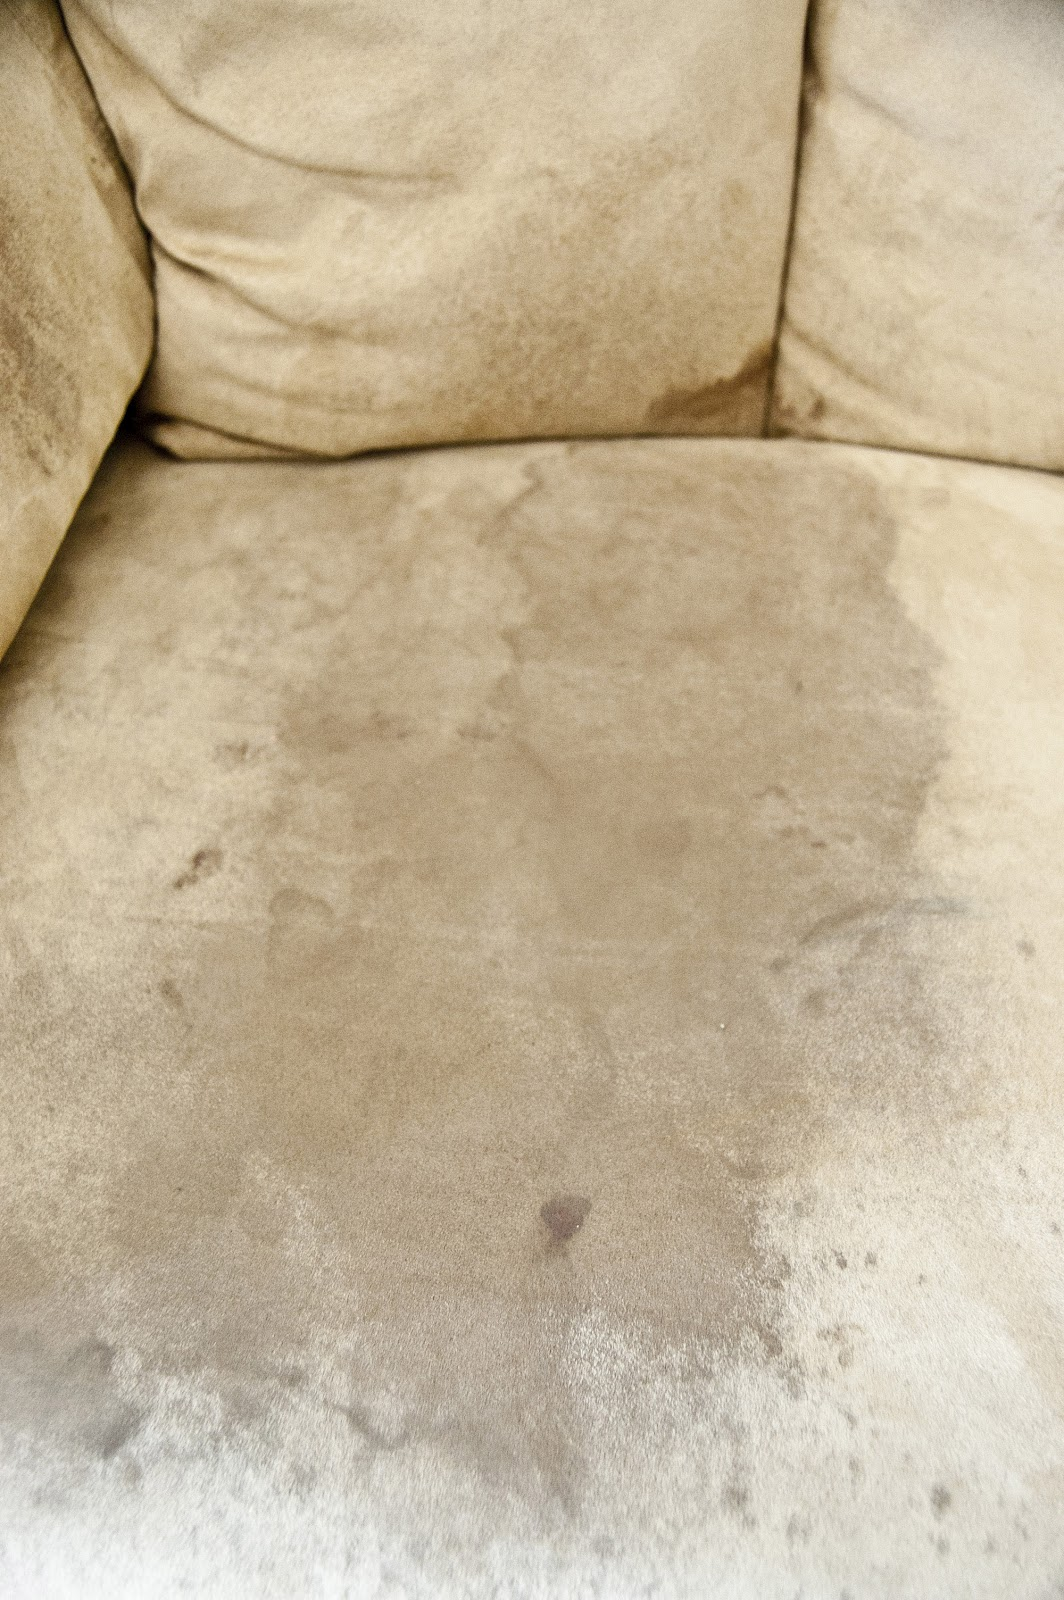 How To Clean Stains On Fabric Sofa Internacional Rs Corinthians Sp Sofascore 551 East A Microfiber Couch